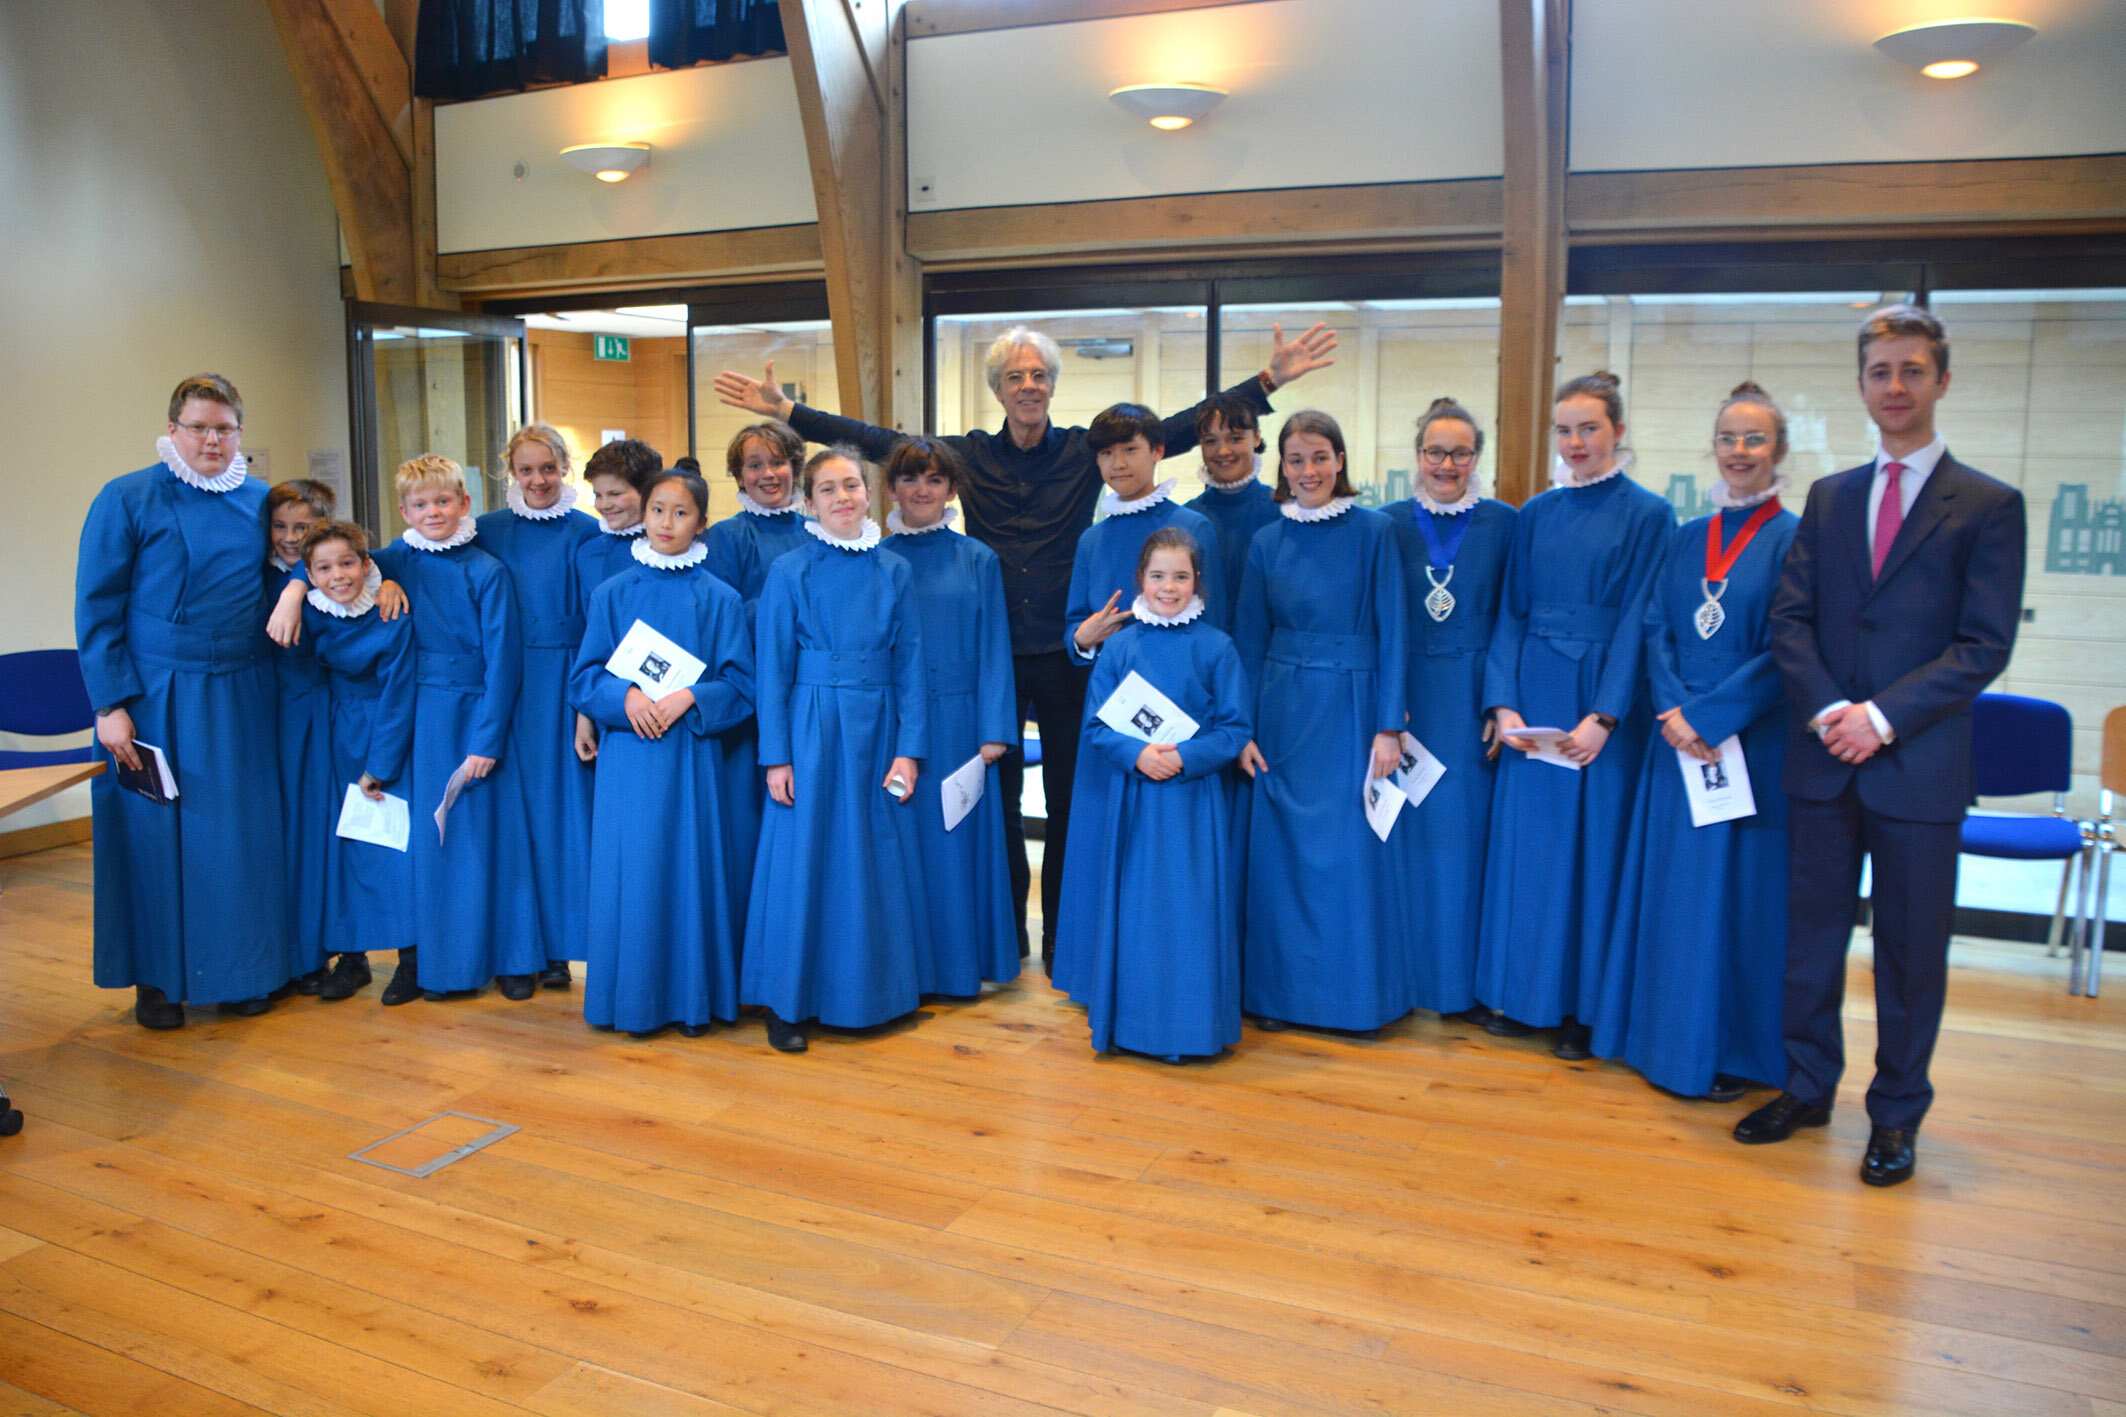 Stewart Copeland (centre) with the choristers and Mr Cole